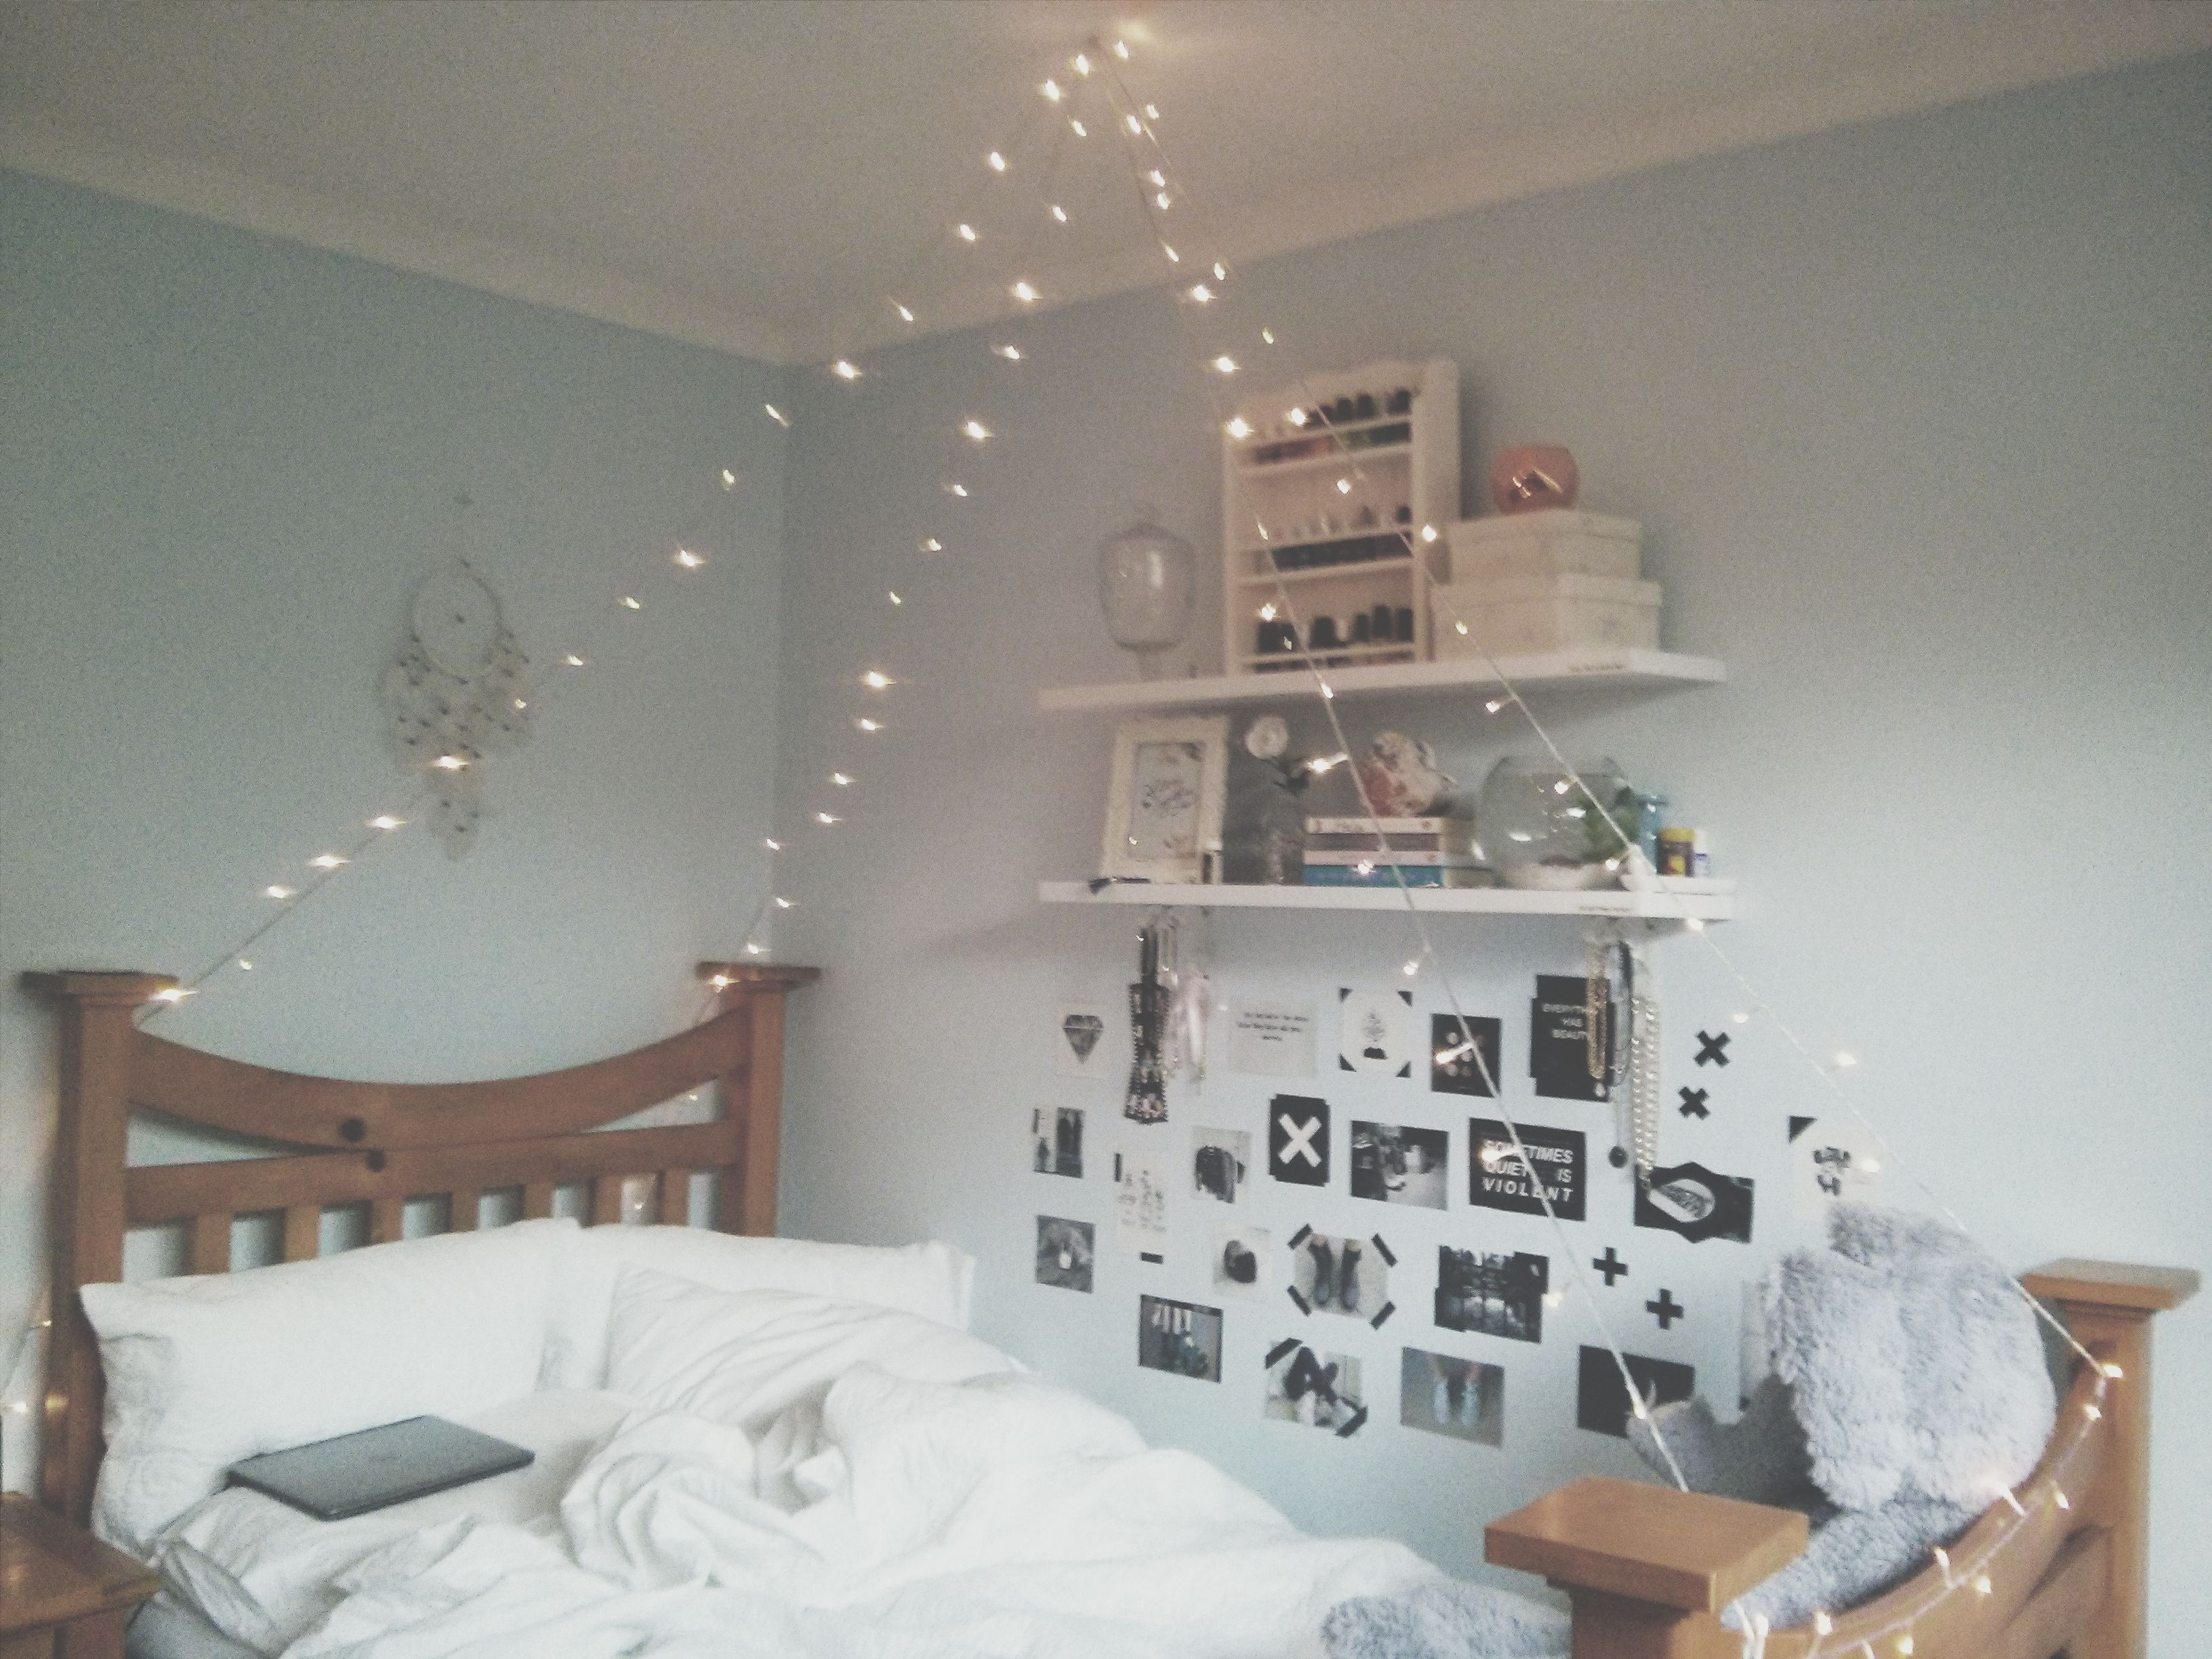 6e20fa bedroom tumblr ideas - Tumblr Bedrooms Inside Tumblr Bedroom Ideas Tumblr